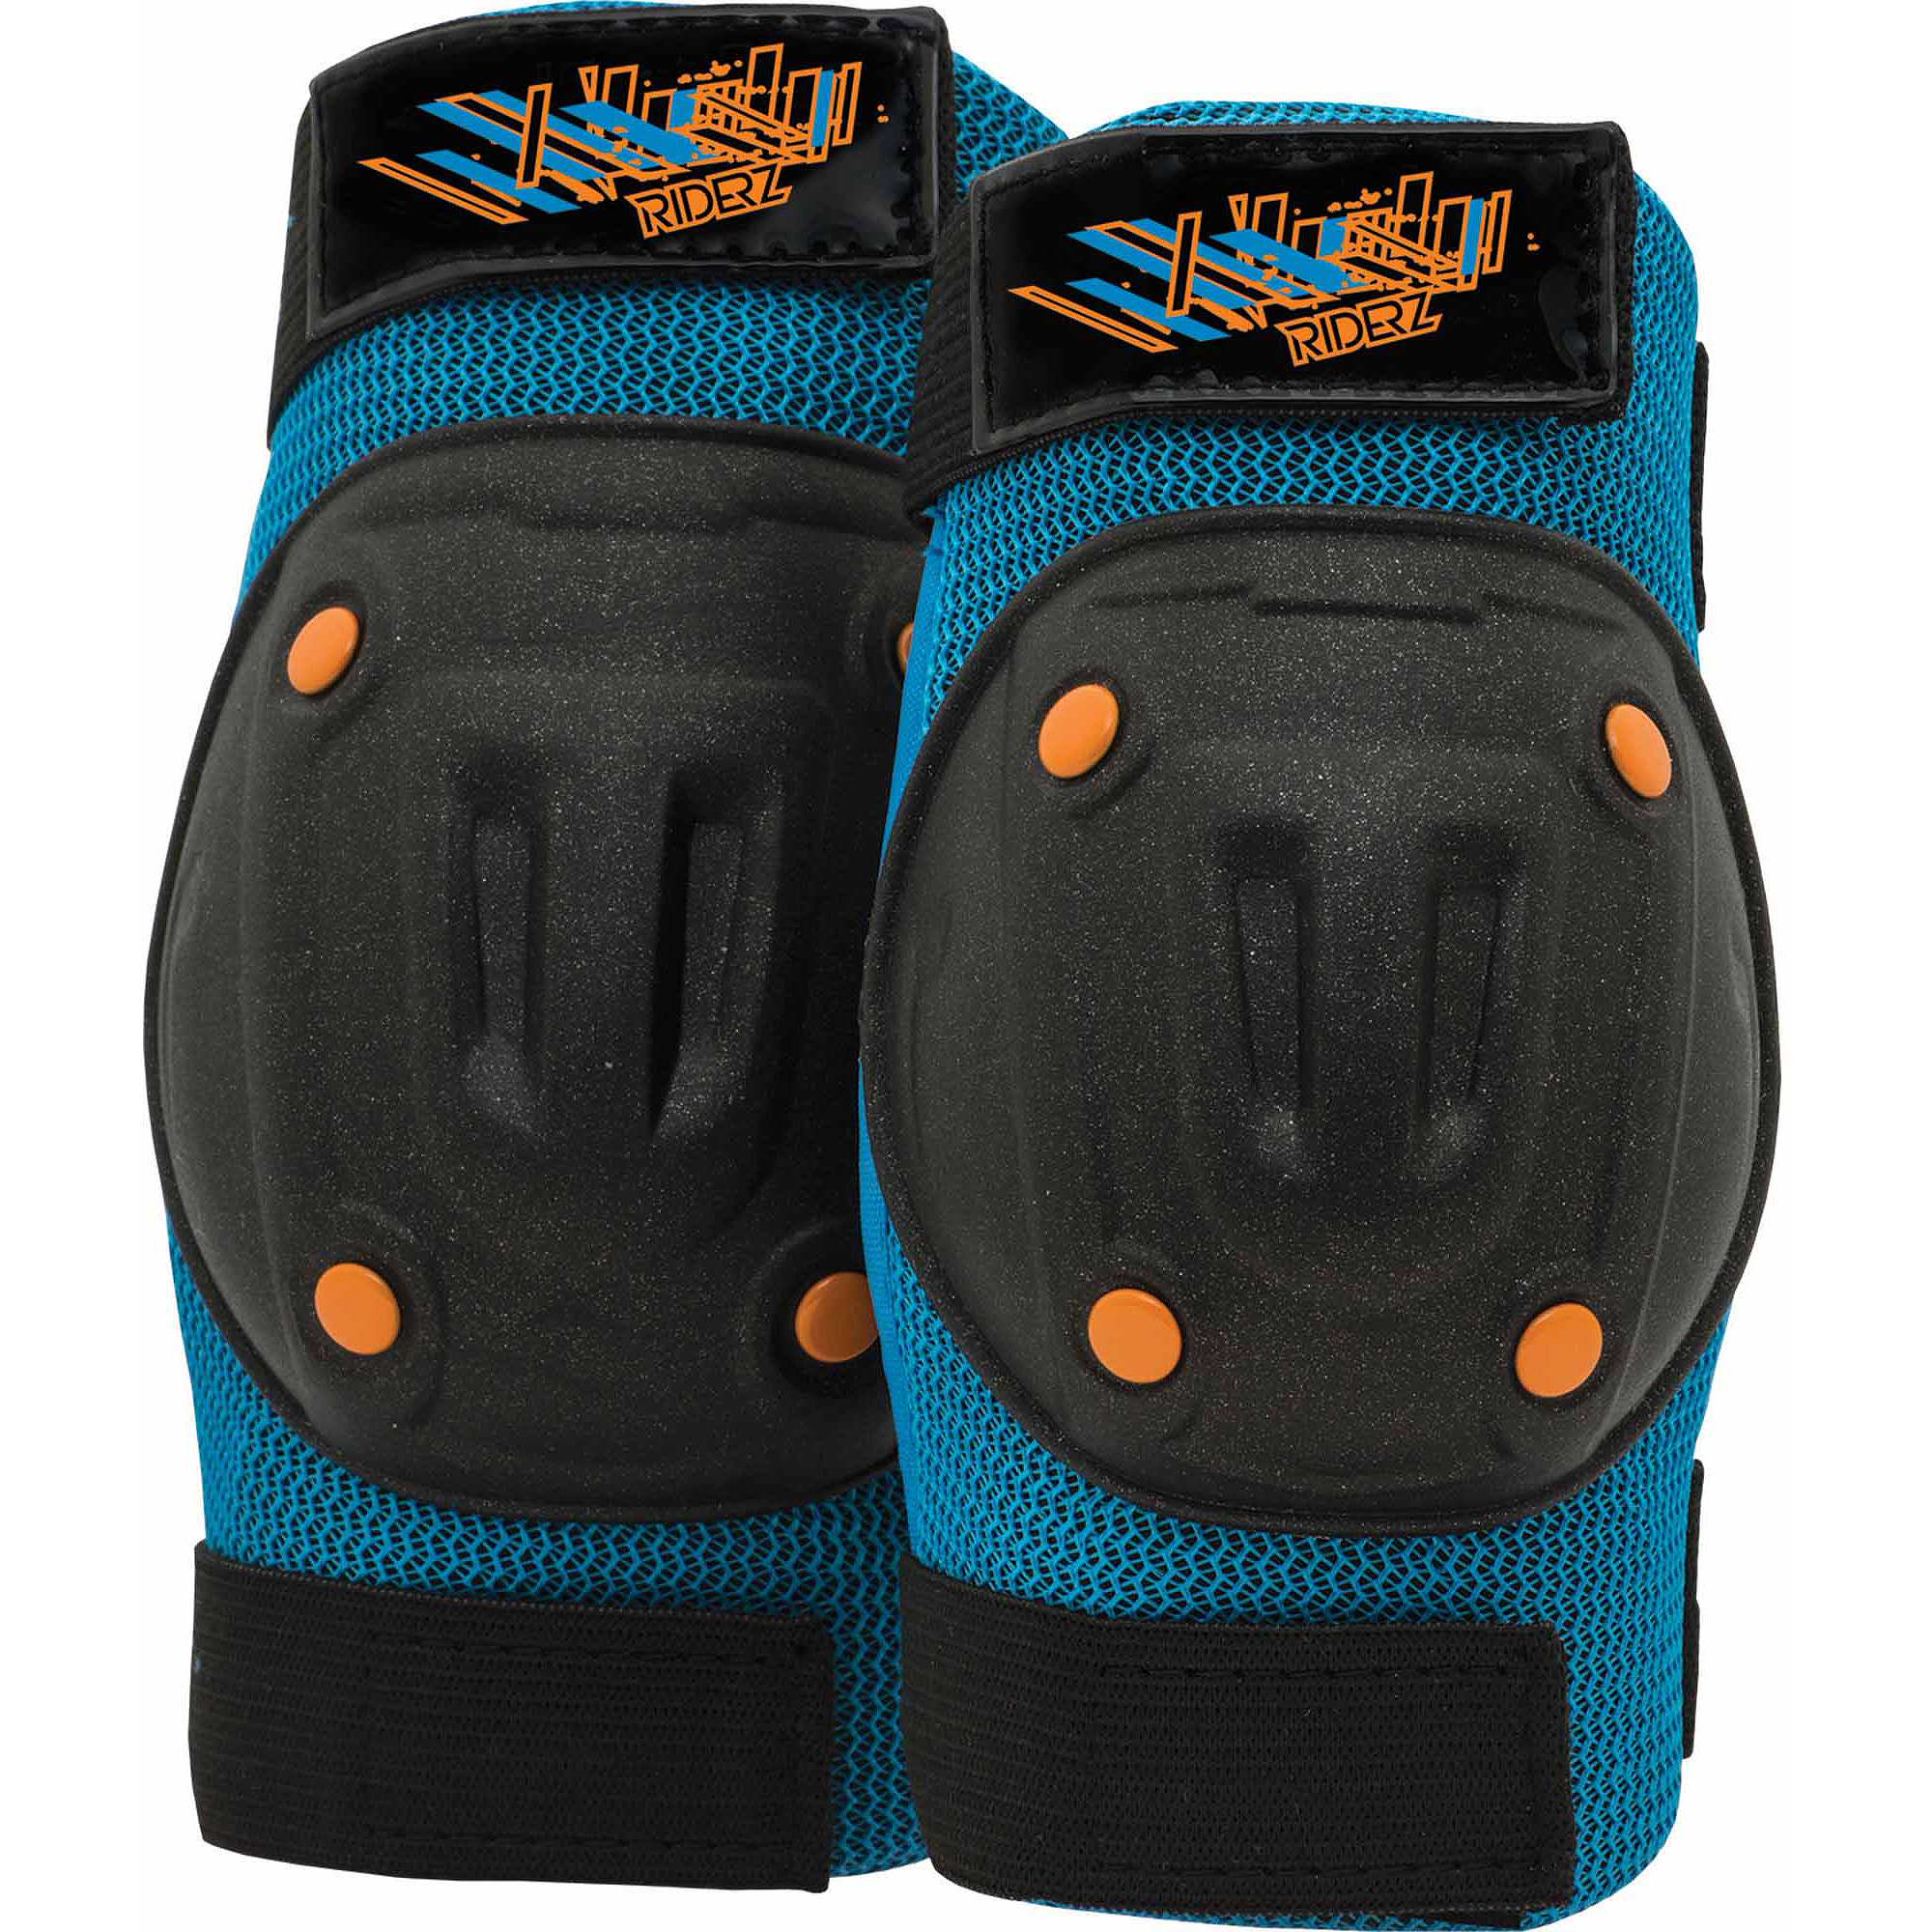 Bell Riderz Street Shred Pads, Boys, Black